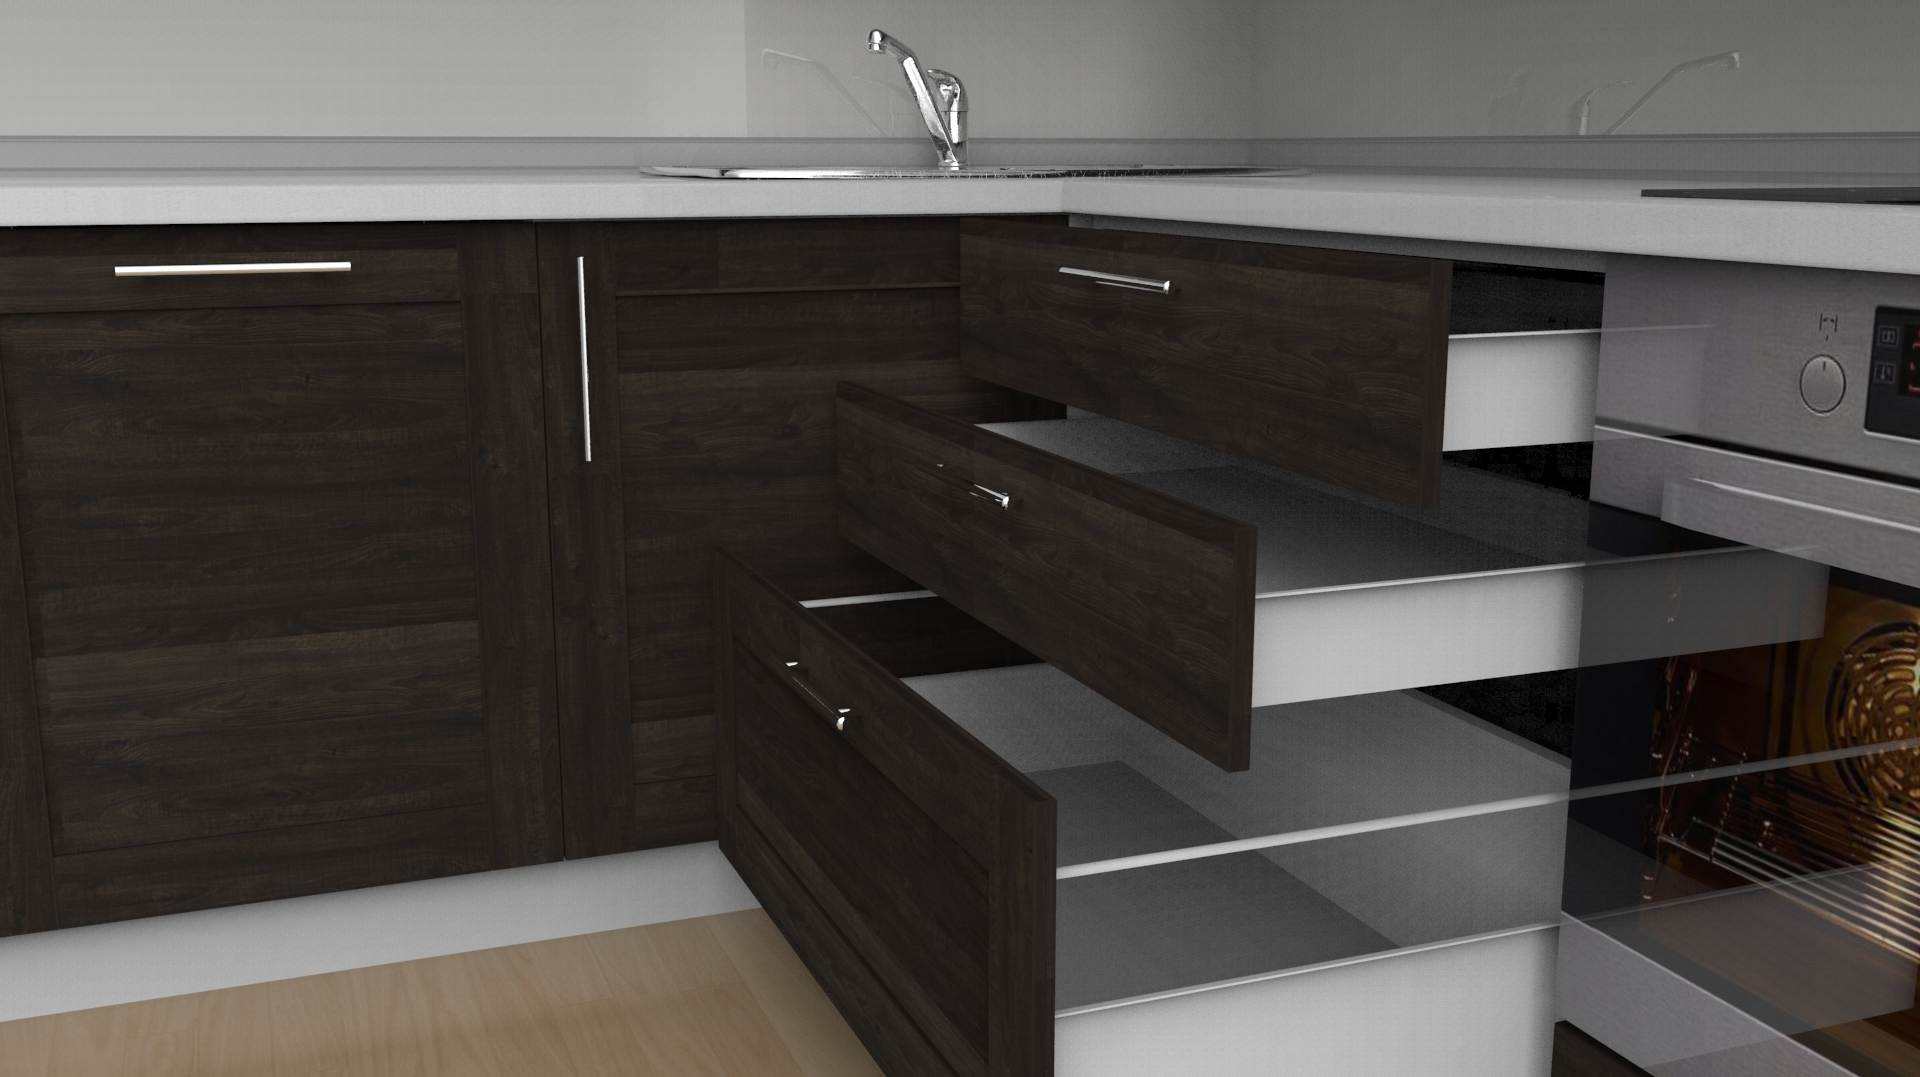 example of kitchen drawer design by prodboard 3d design software. Interior Design Ideas. Home Design Ideas